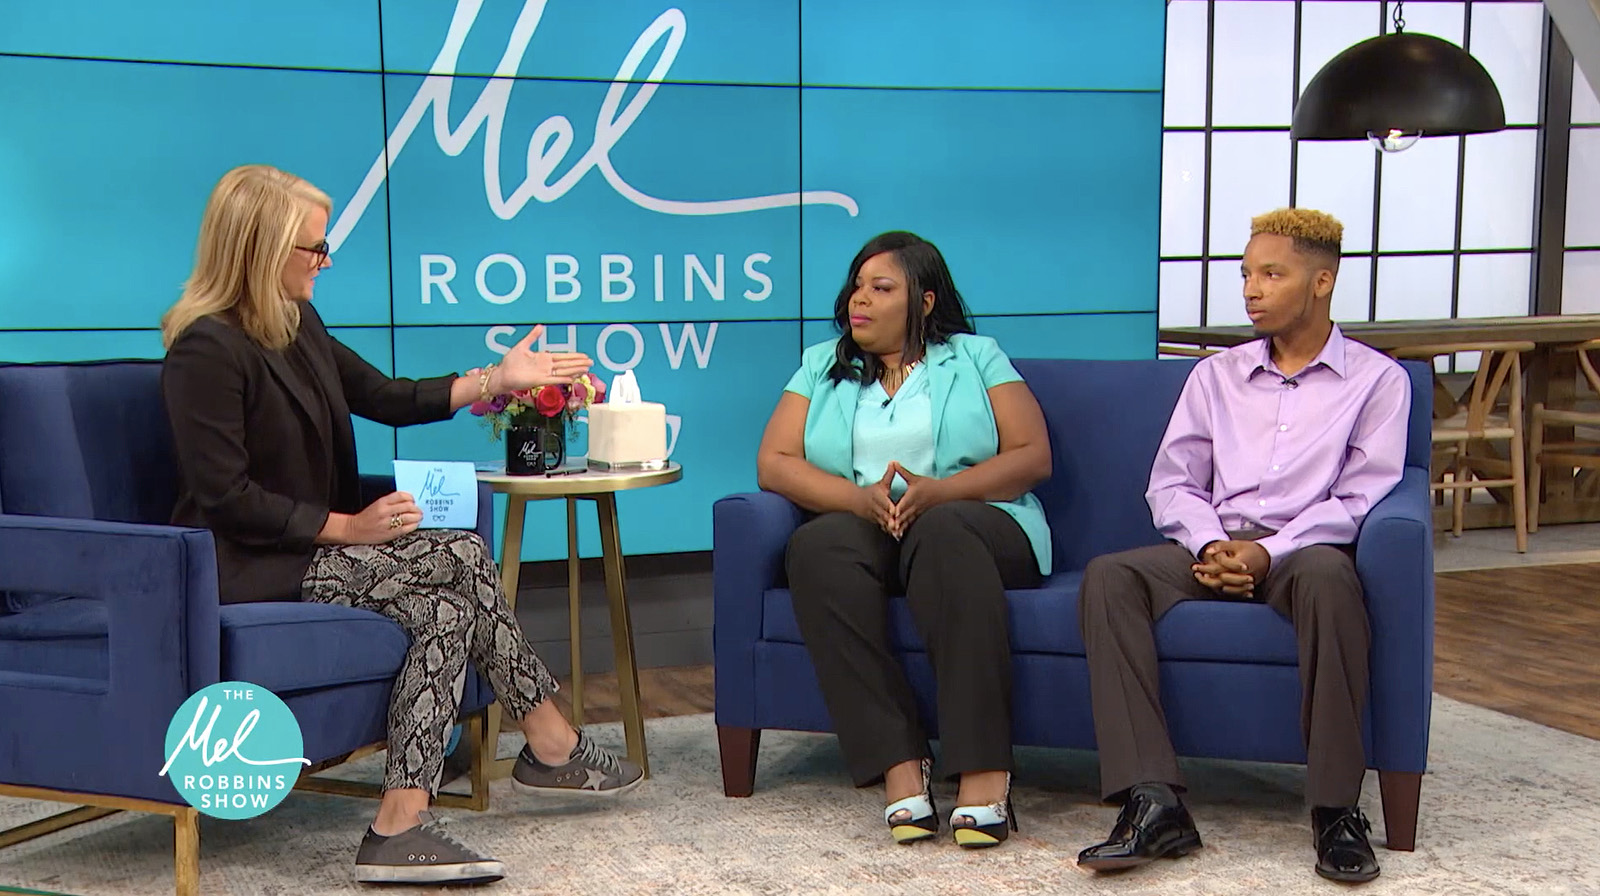 NCS_Mel-Robbins-Show_JHD-Group_Set-Design_004